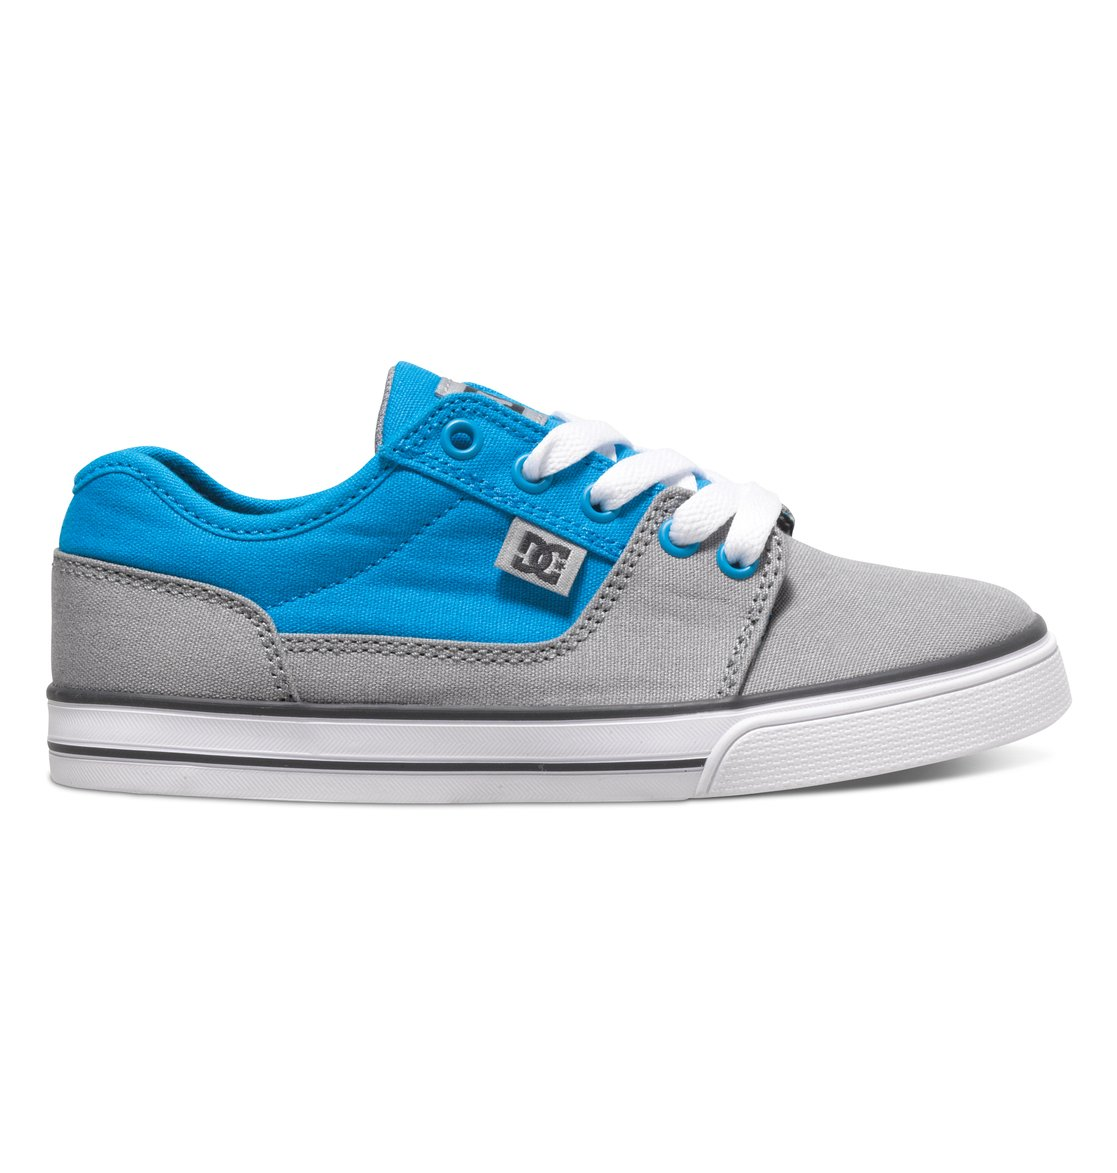 DC Shoes Tonik TX SE - Shoes - Zapatos - Chicos - EU 36.5 DScnF2k